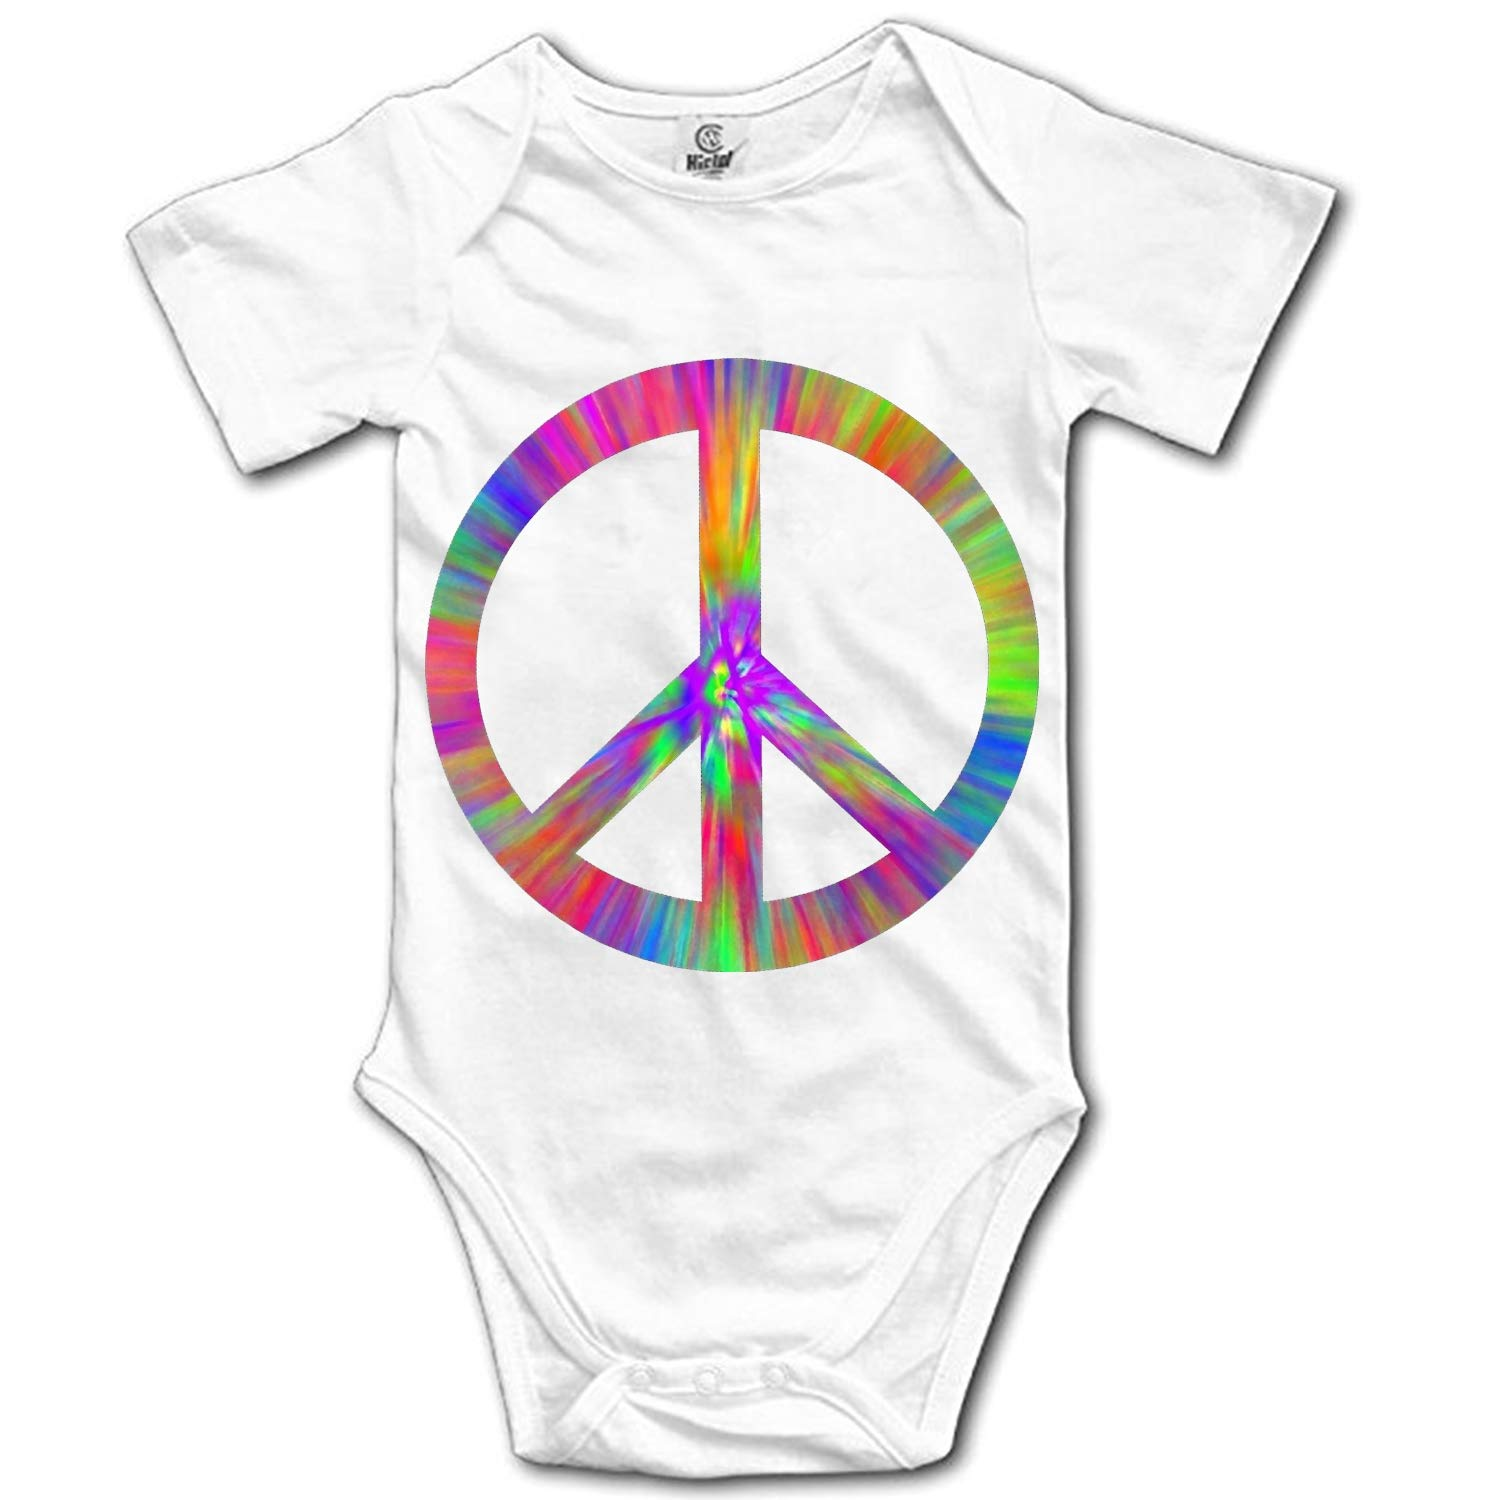 Baby Girl Summer Clothes Love and Peace Bus Short Sleeve One-Piece Suit Romper Home Outfit